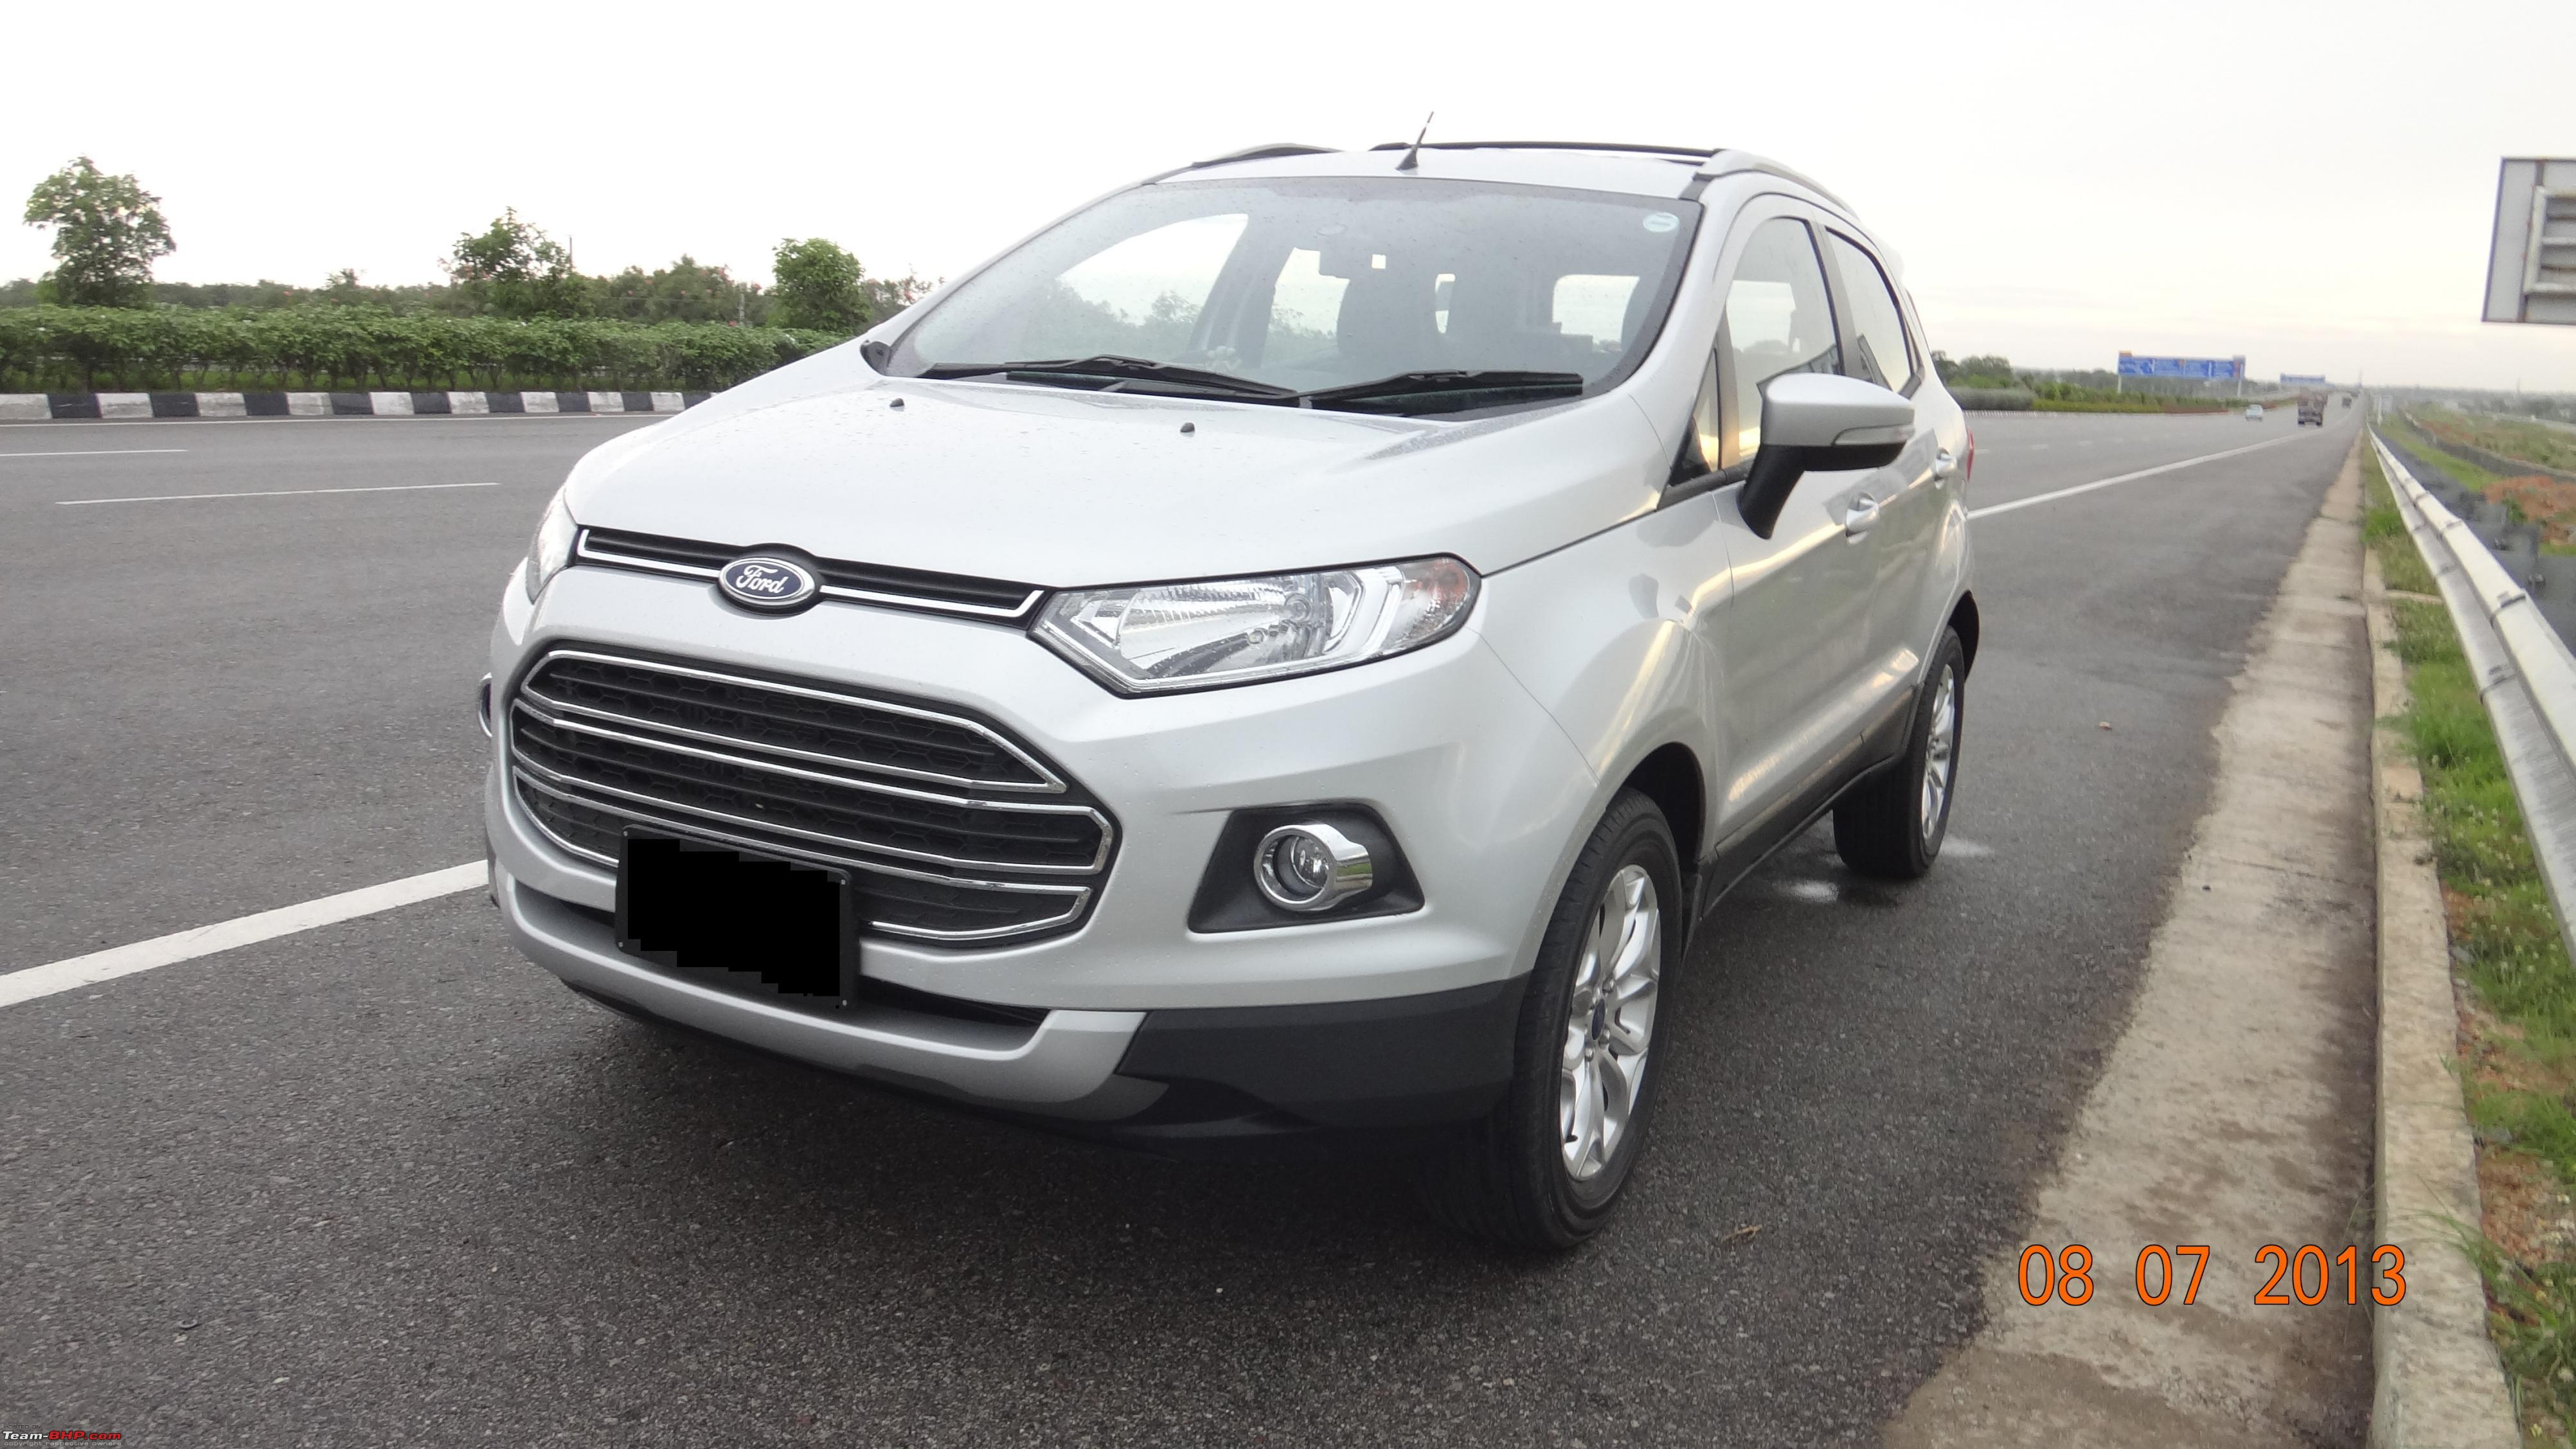 Ford Ecosport Silver Colour Photos